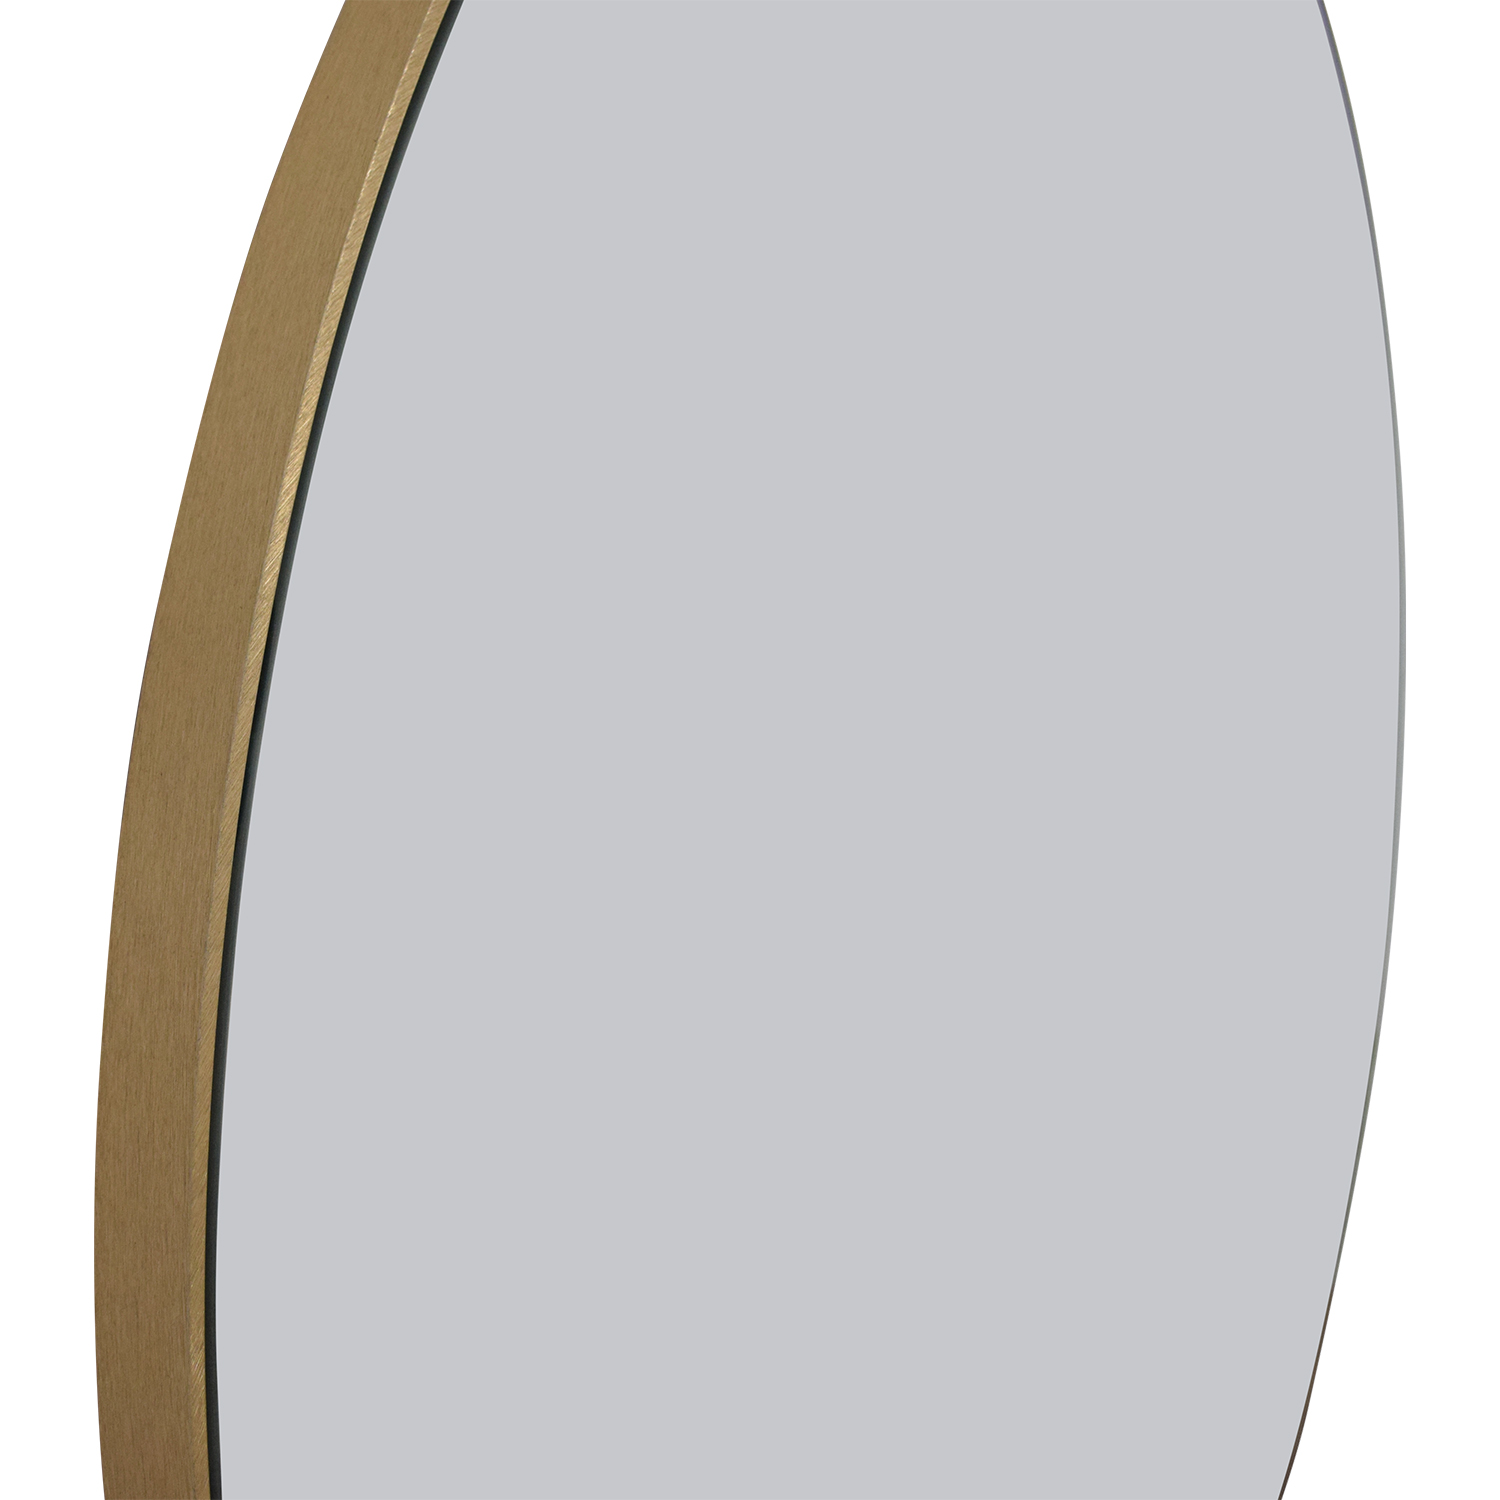 CB2 CB2 Infinity Round Brass Wall Mirror dimensions